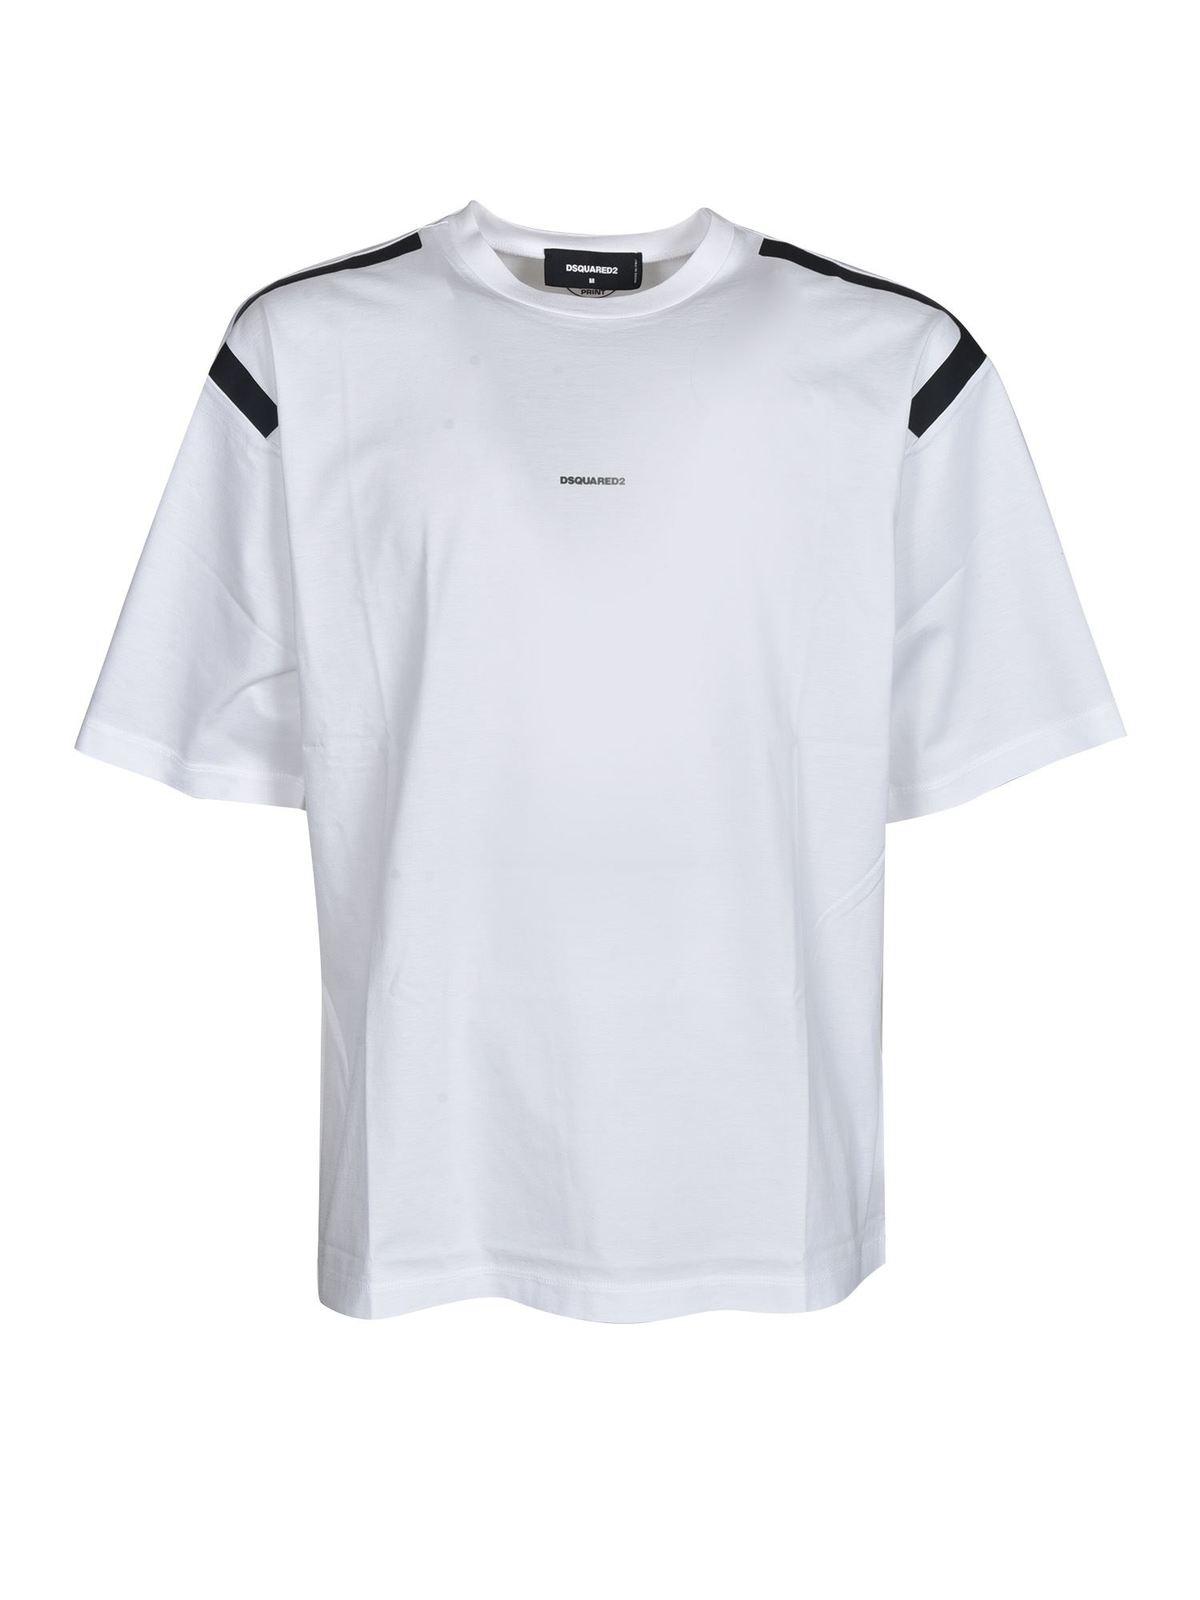 Dsquared2 RELAXED FIT T-SHIRT IN WHITE